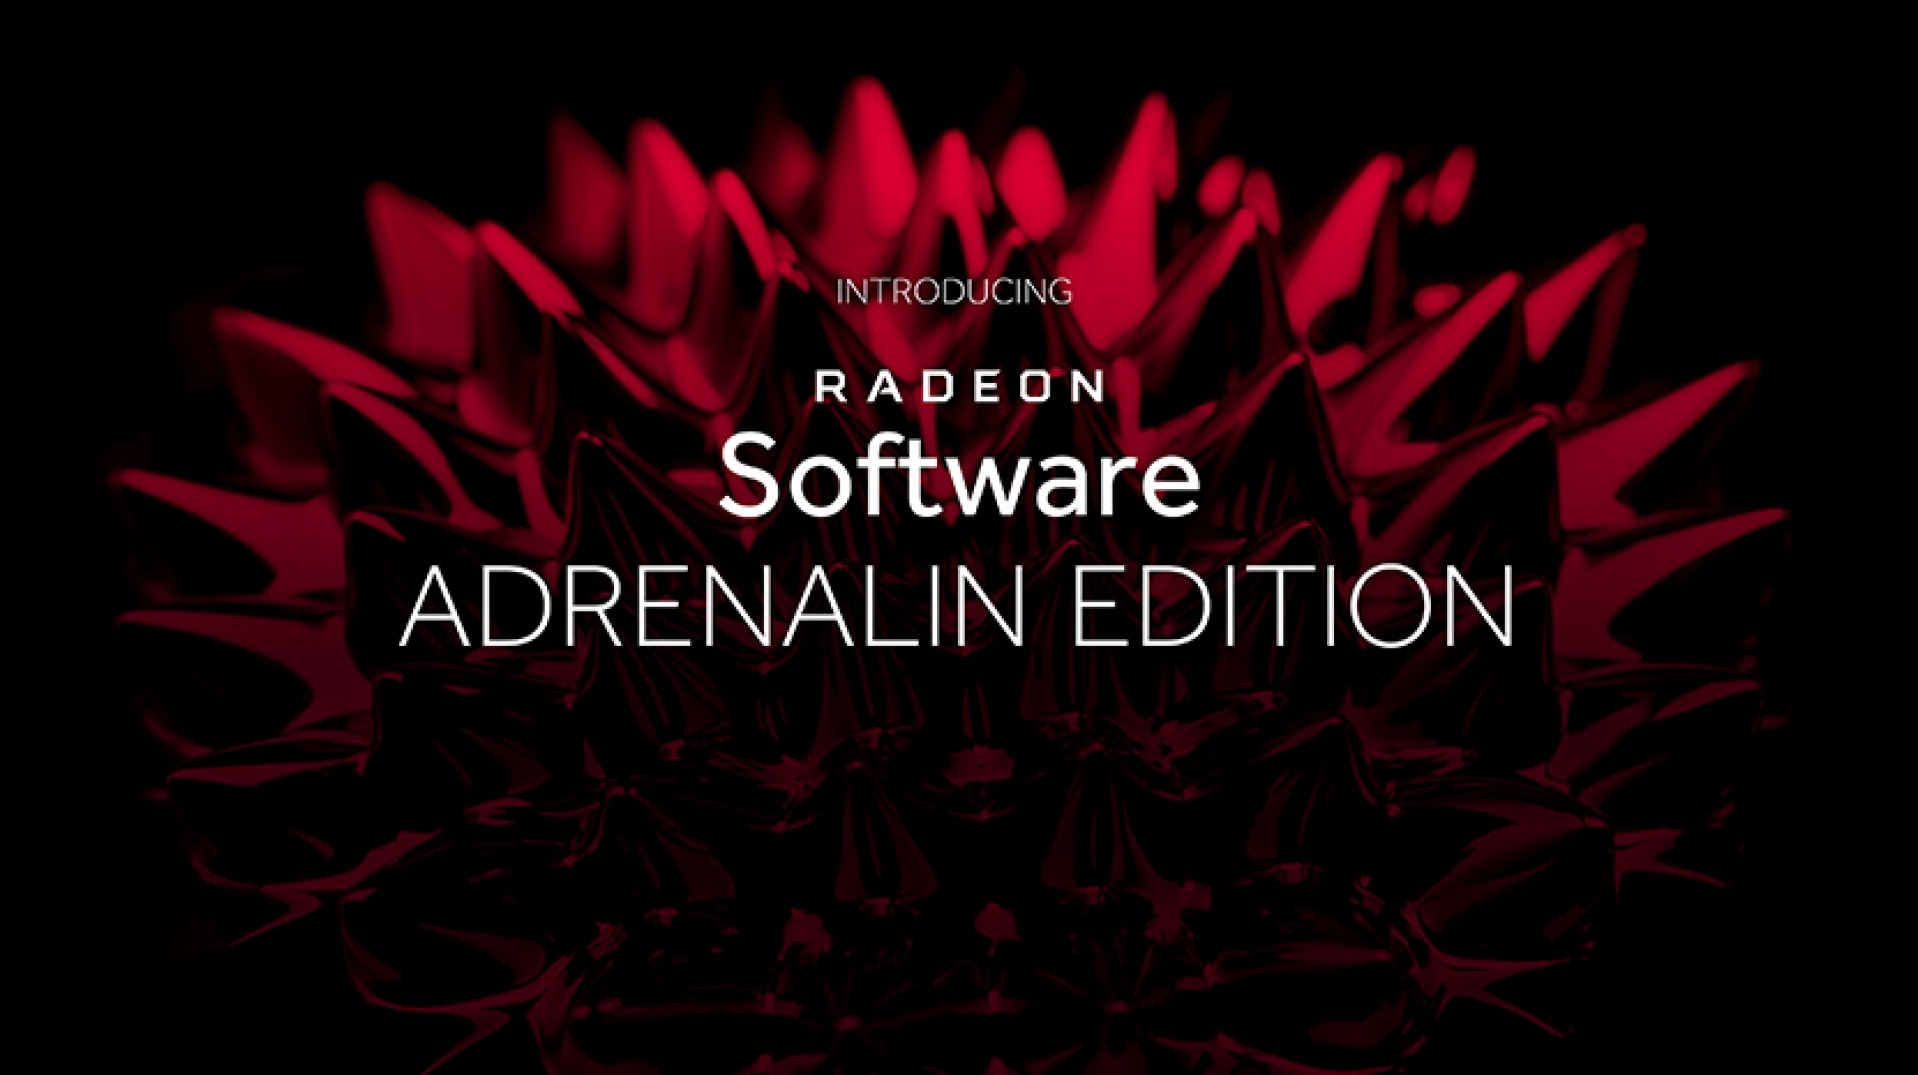 PUBG has been auto-banning Radeon users with Radeon 18 9 1